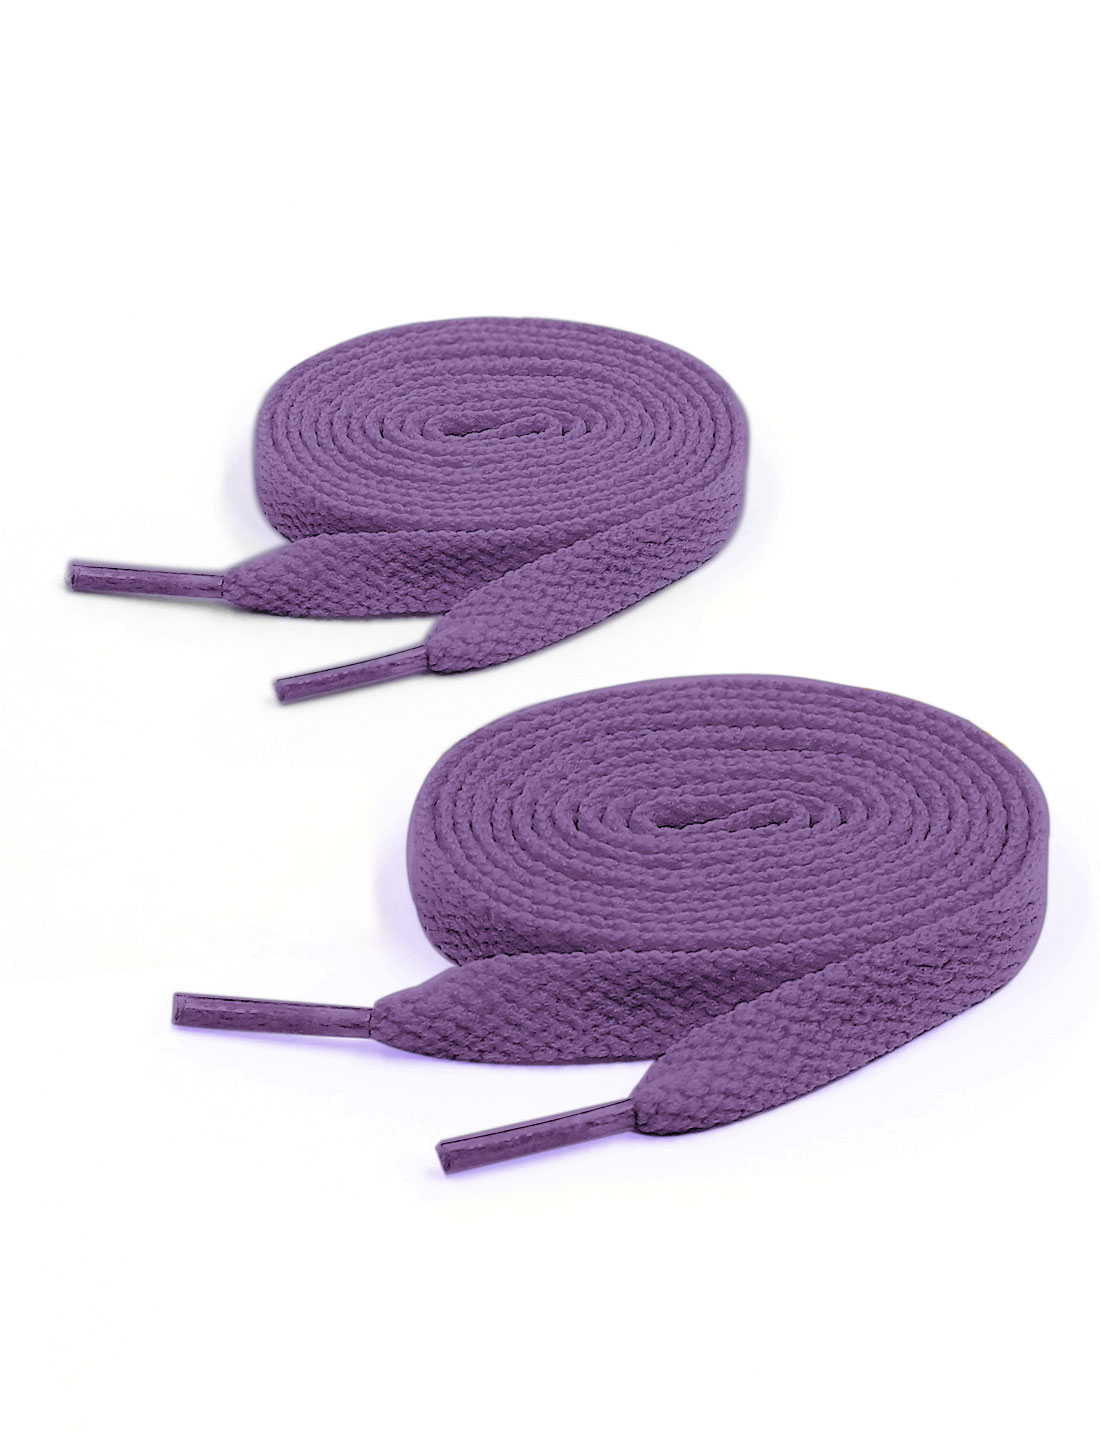 Unisex 123cm Length 2 Pairs Casual Sneakers Plastic Tip Shoes Laces Purple